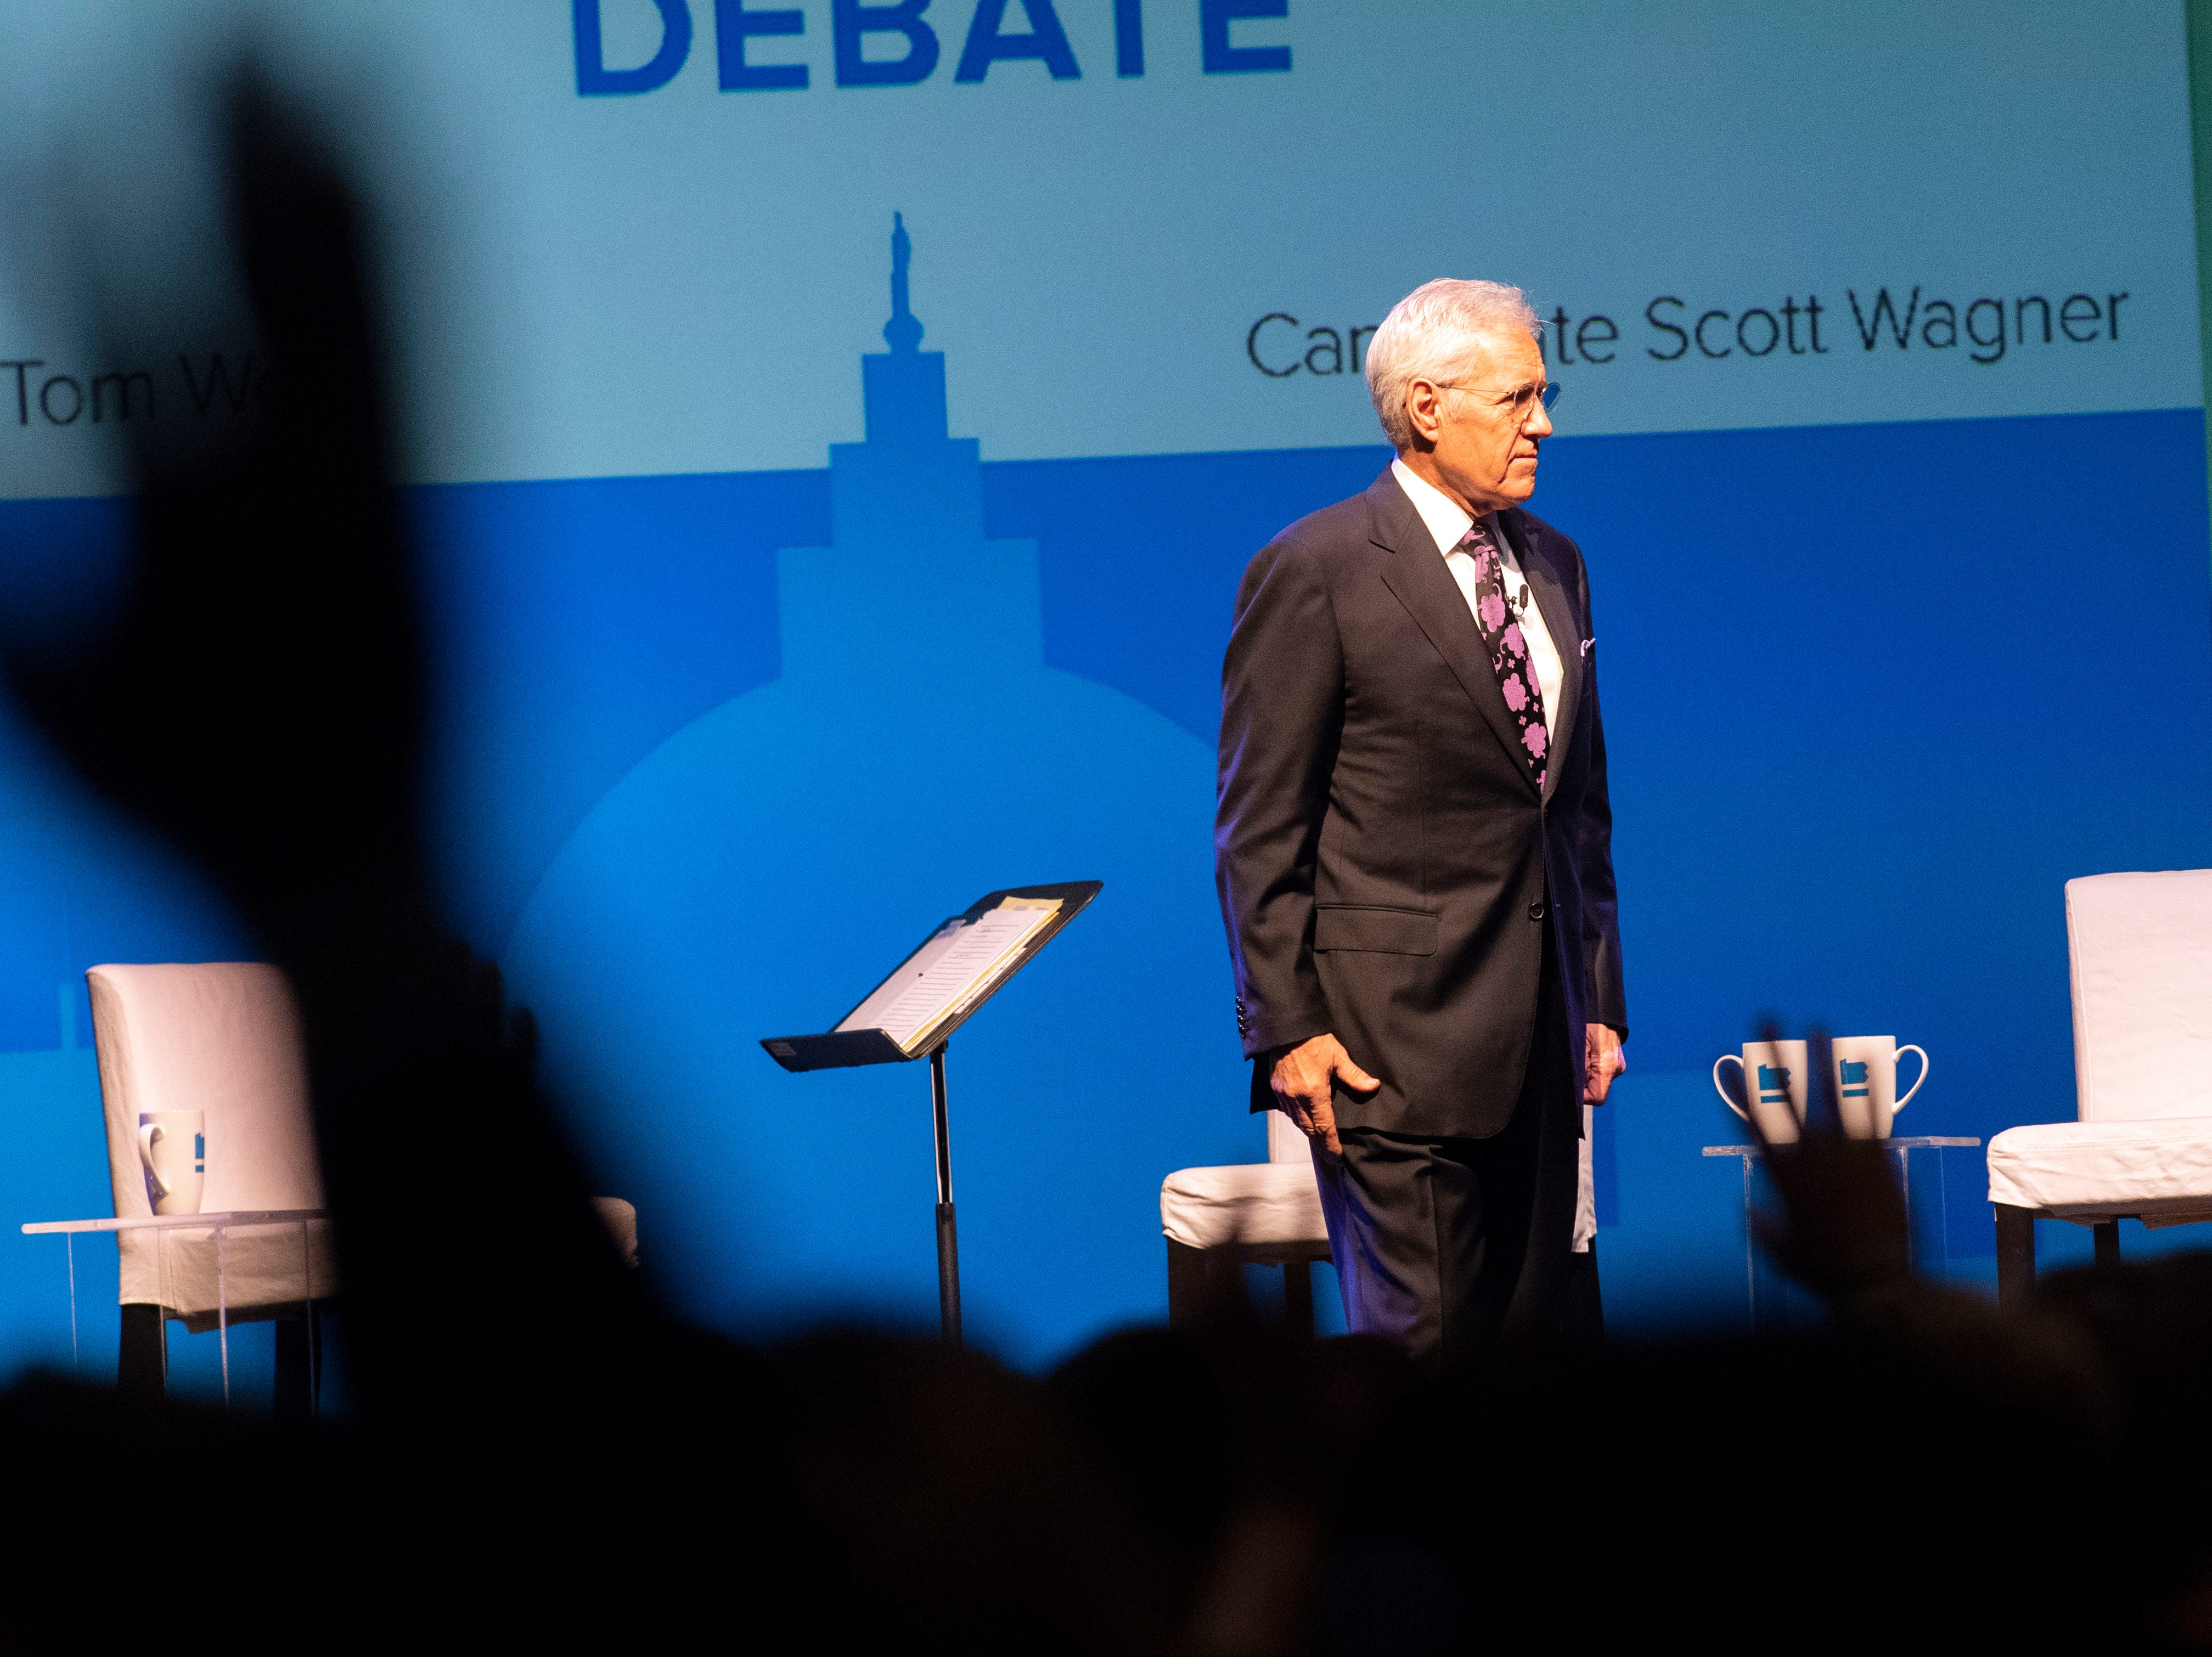 Debate moderator Alex Trebek, of Jeopardy!, asks the audience to raise their hands if they already know who they are voting for in the state Governor's race prior to the gubernatorial debate at Hershey Lodge on Monday, Oct. 1, 2018.